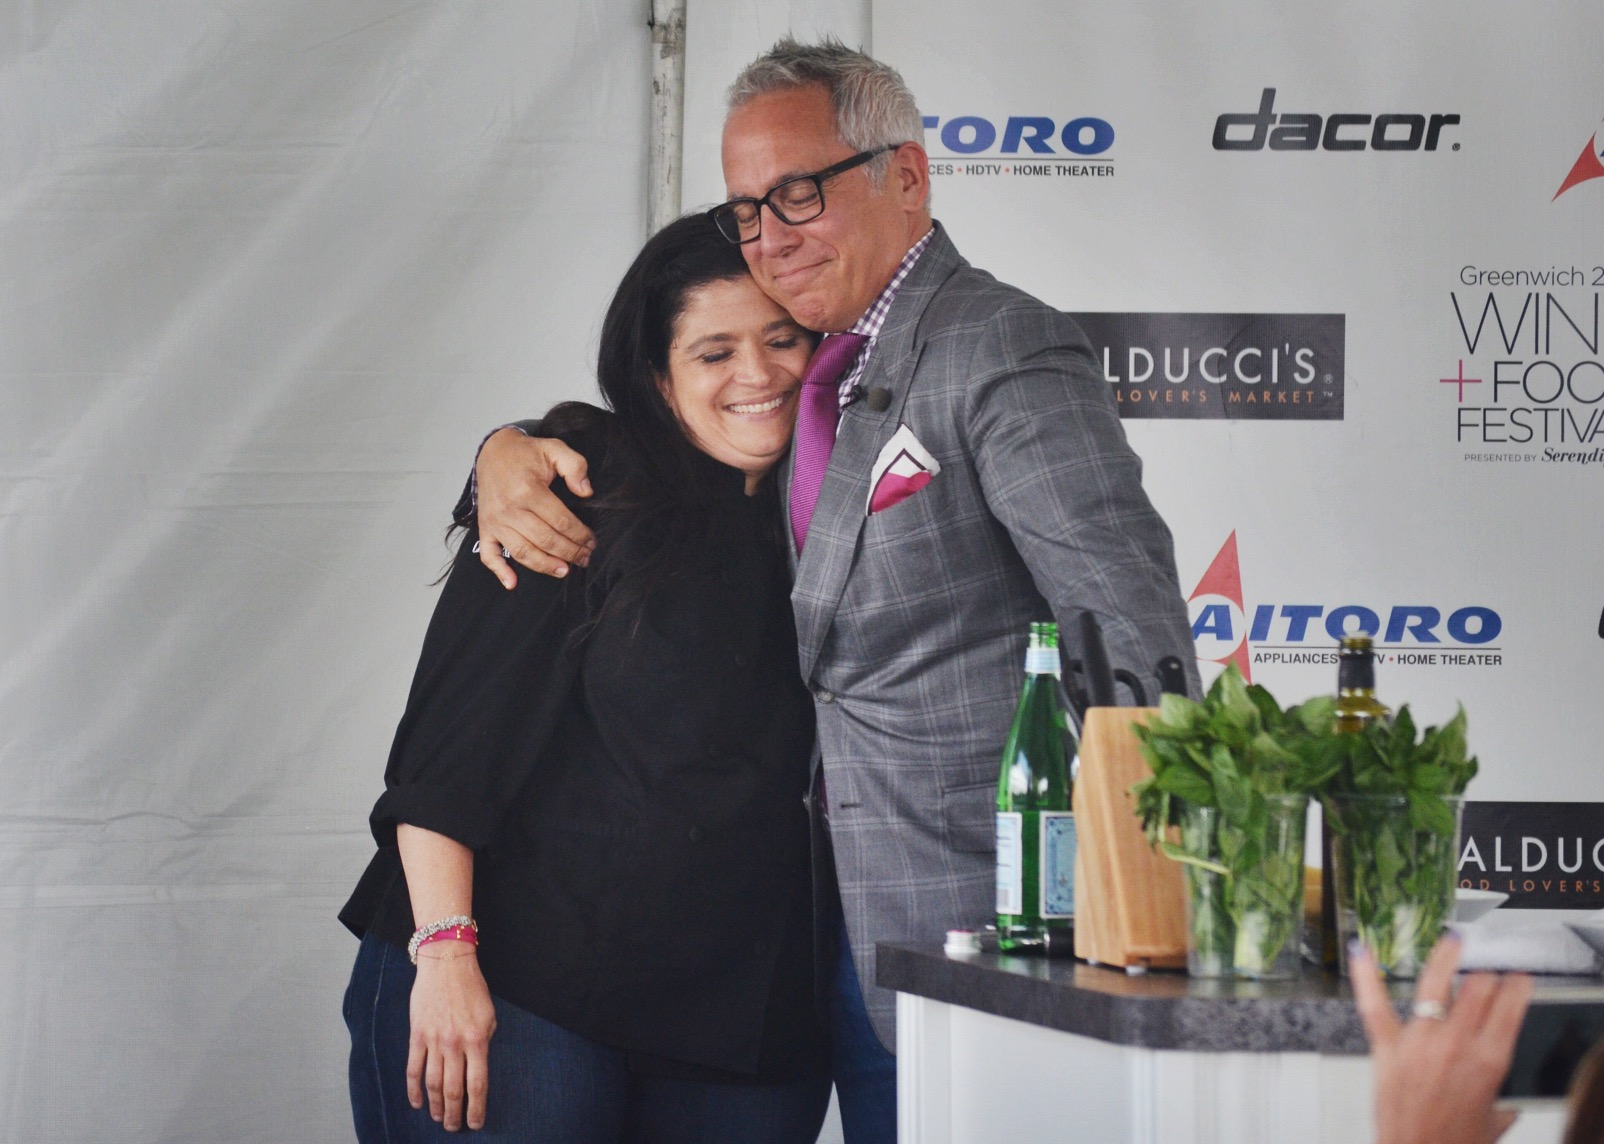 Precious moment between  Chef Alex Guarnaschelli  and  Chef Geoffrey Zakarian  before his cooking demonstration.